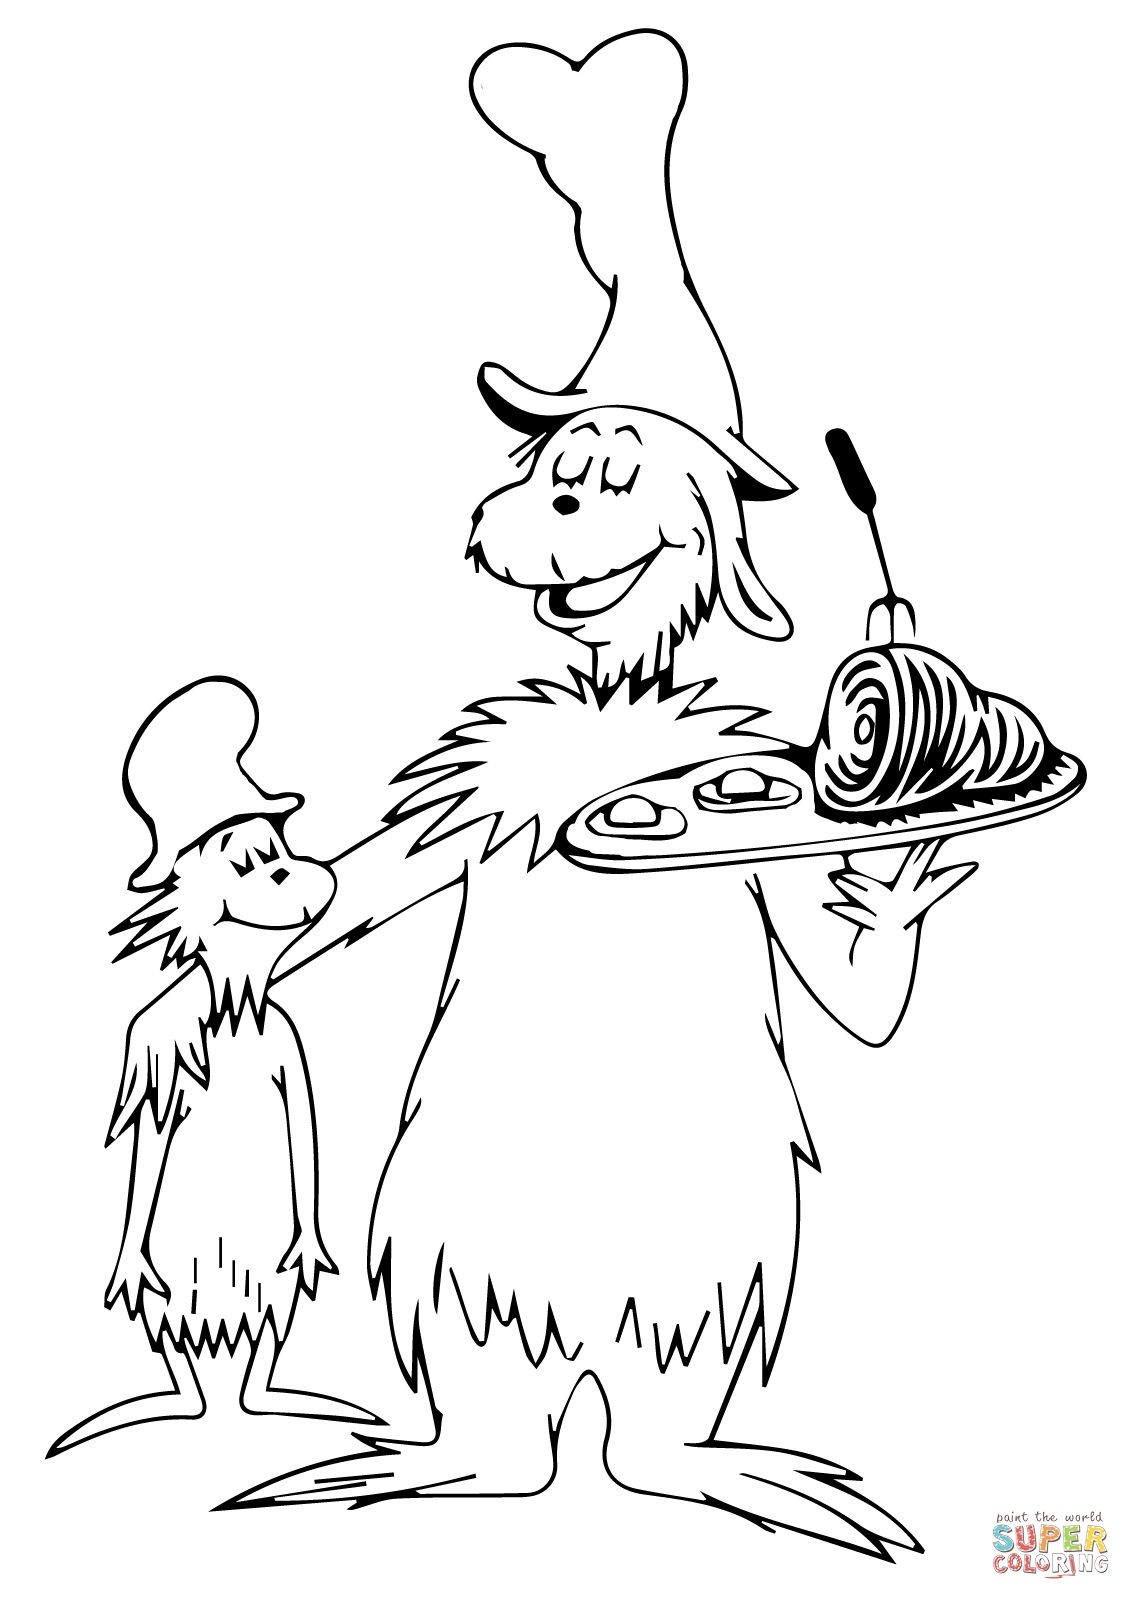 Green Eggs And Ham Coloring Page   Young Womens   Dr Seuss Coloring - Free Printable Dr Seuss Coloring Pages